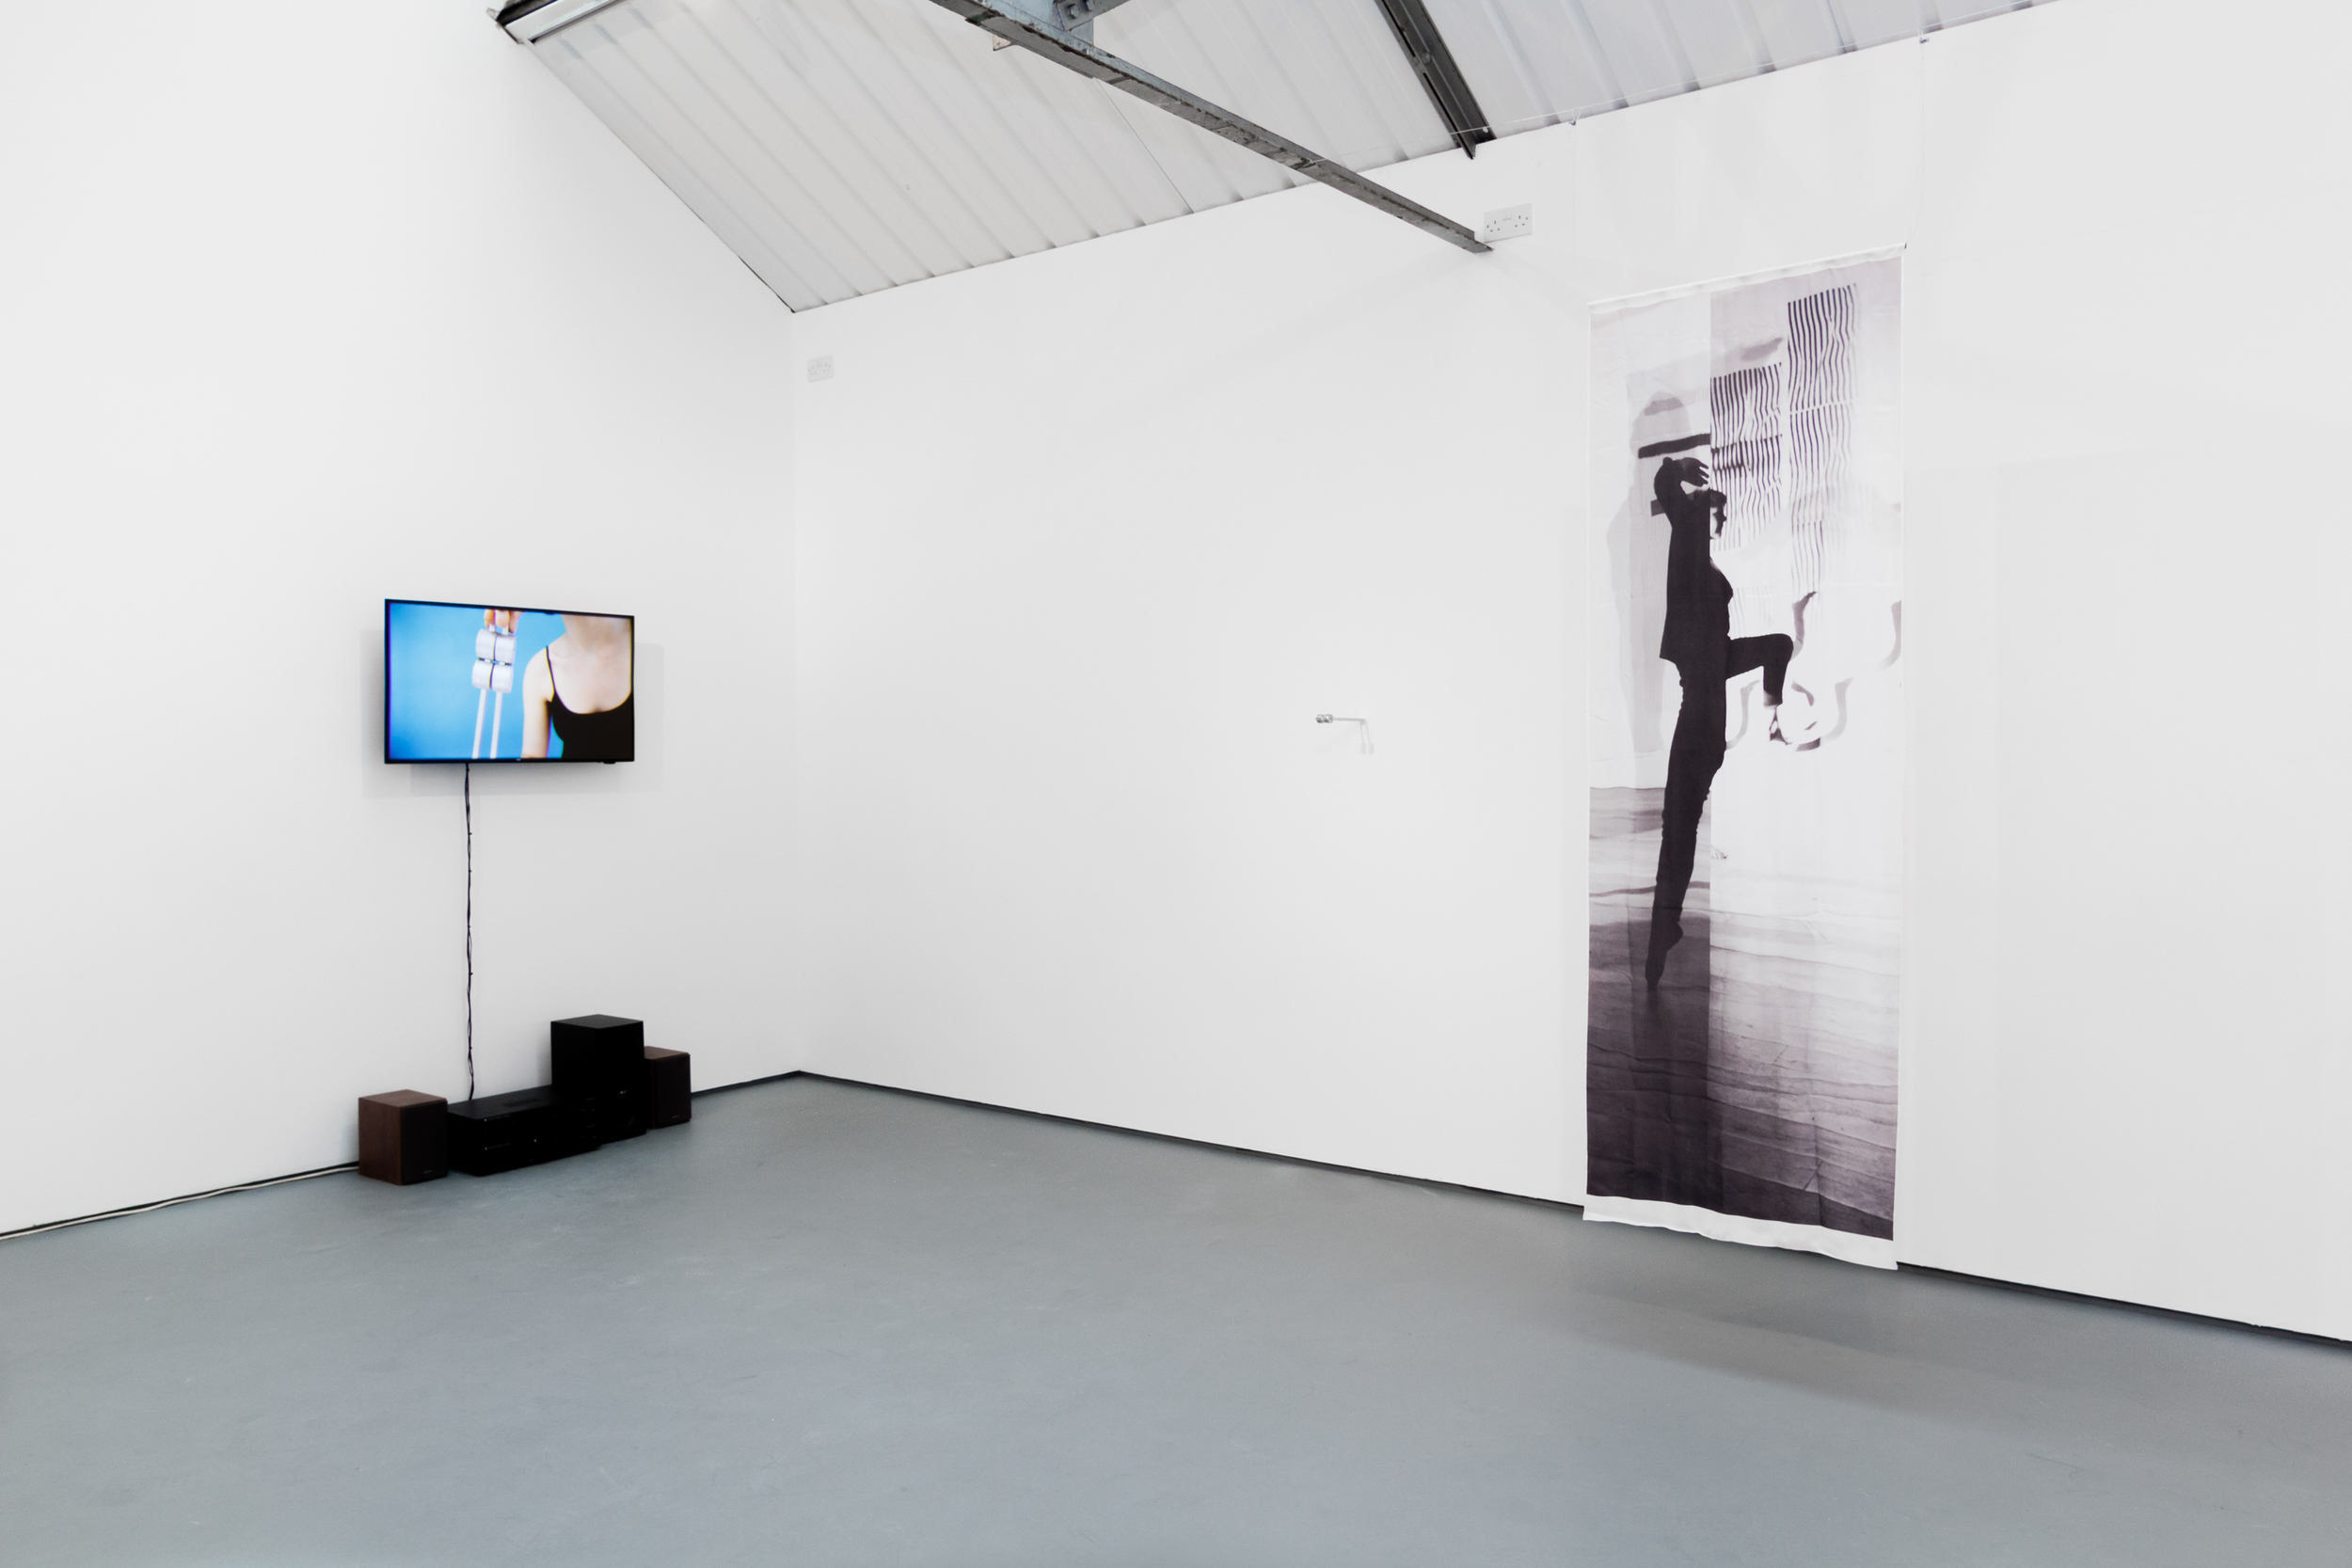 4-And-as-a-veil-rather-than-solid-Rowena-Harris-2015-6.jpg